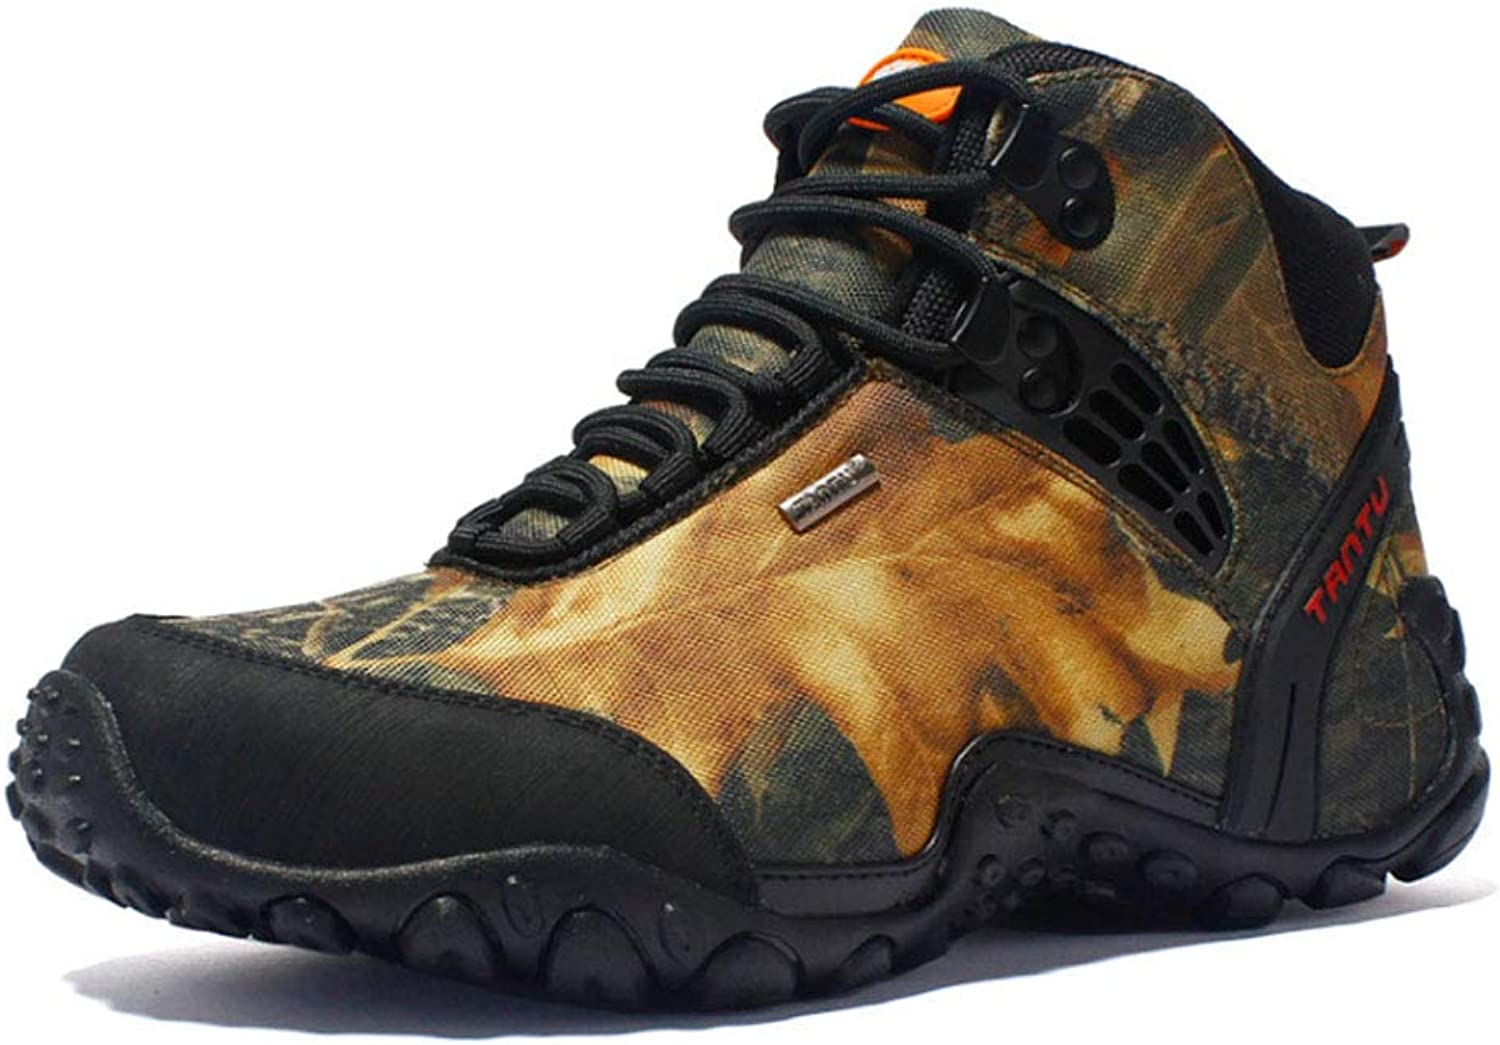 HYLFF Men's Outdoor Hiking shoes Warm wear-Resistant Casual high-top Mountain Boots Breathable shoes Large Size